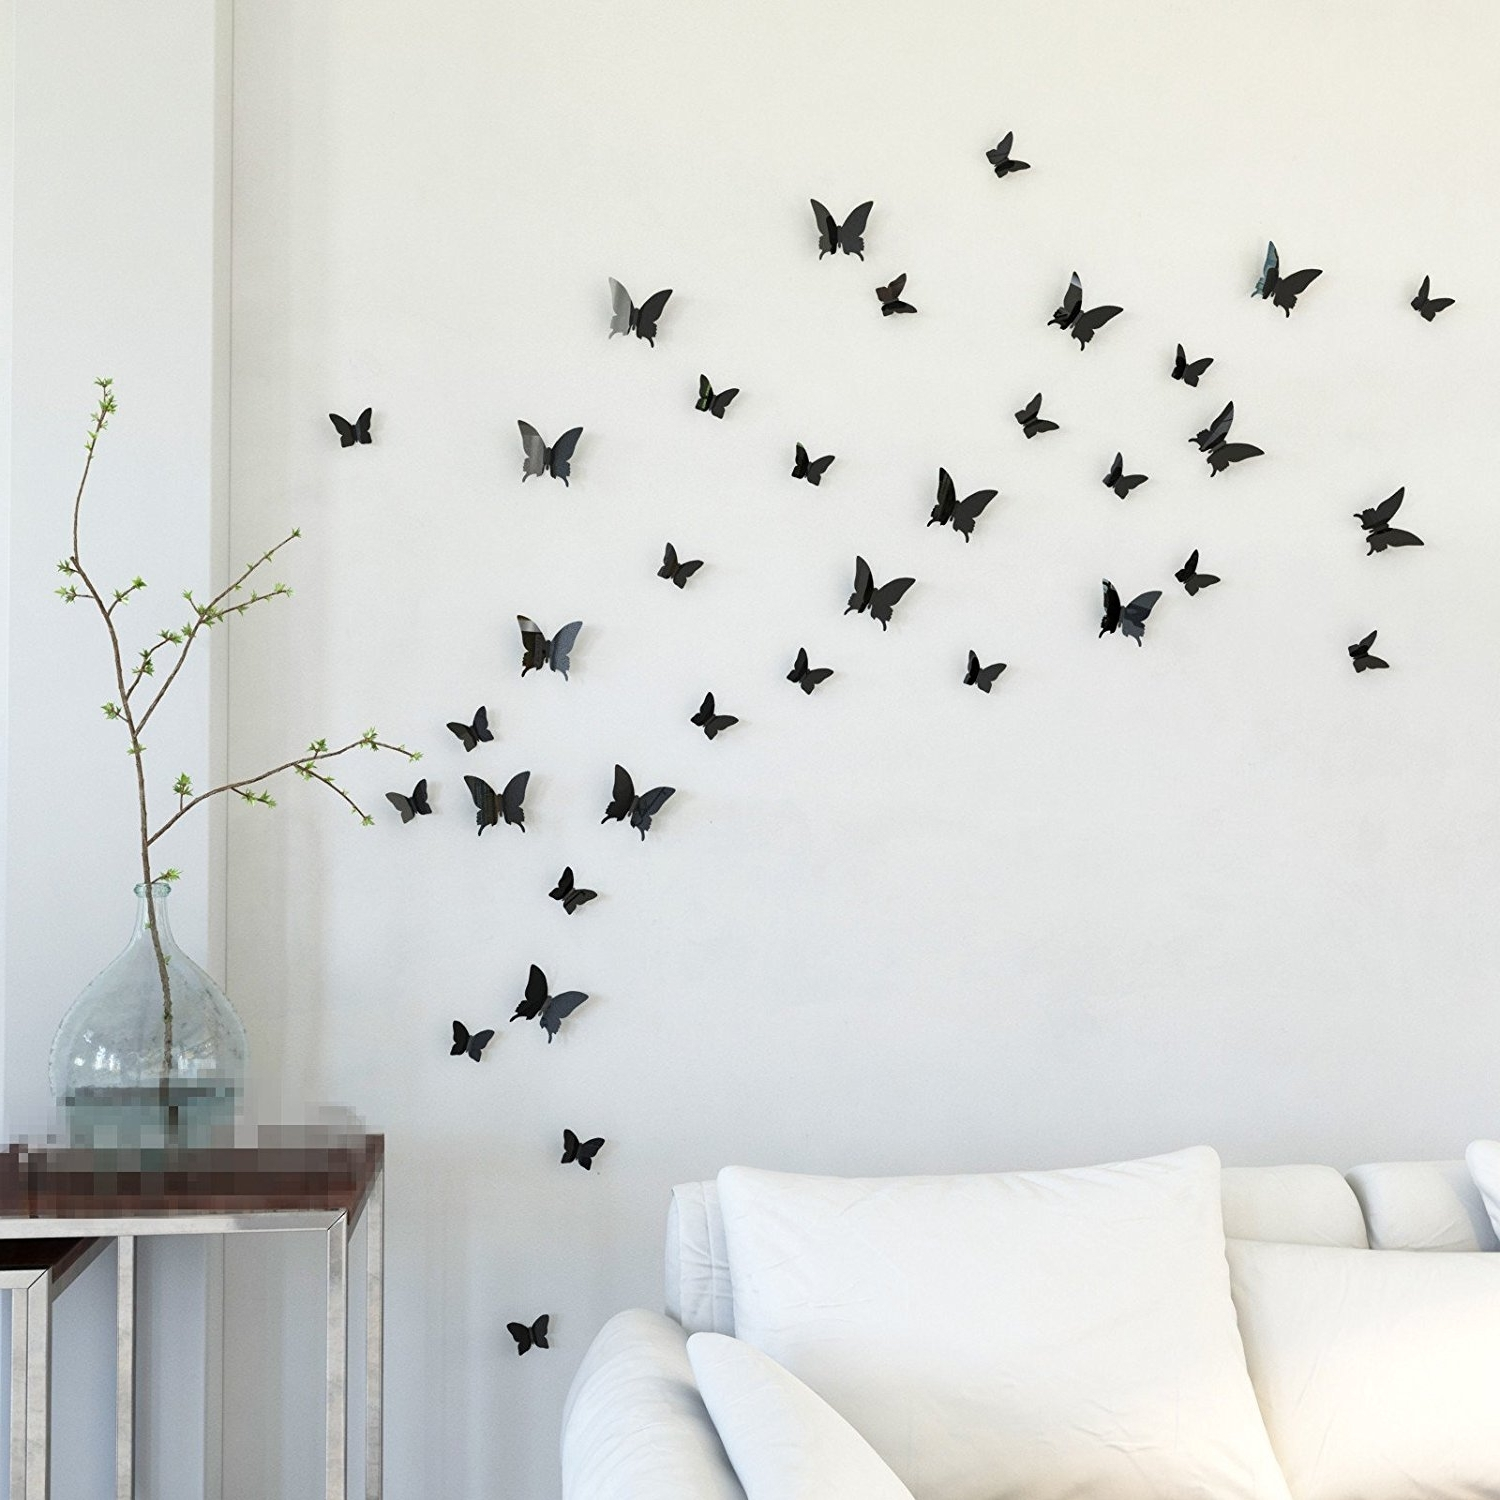 Trendy Endearing Free Diy 3D Butterfly Wall Art Also Free Templates Along Inside Diy 3D Wall Art Butterflies (View 12 of 15)